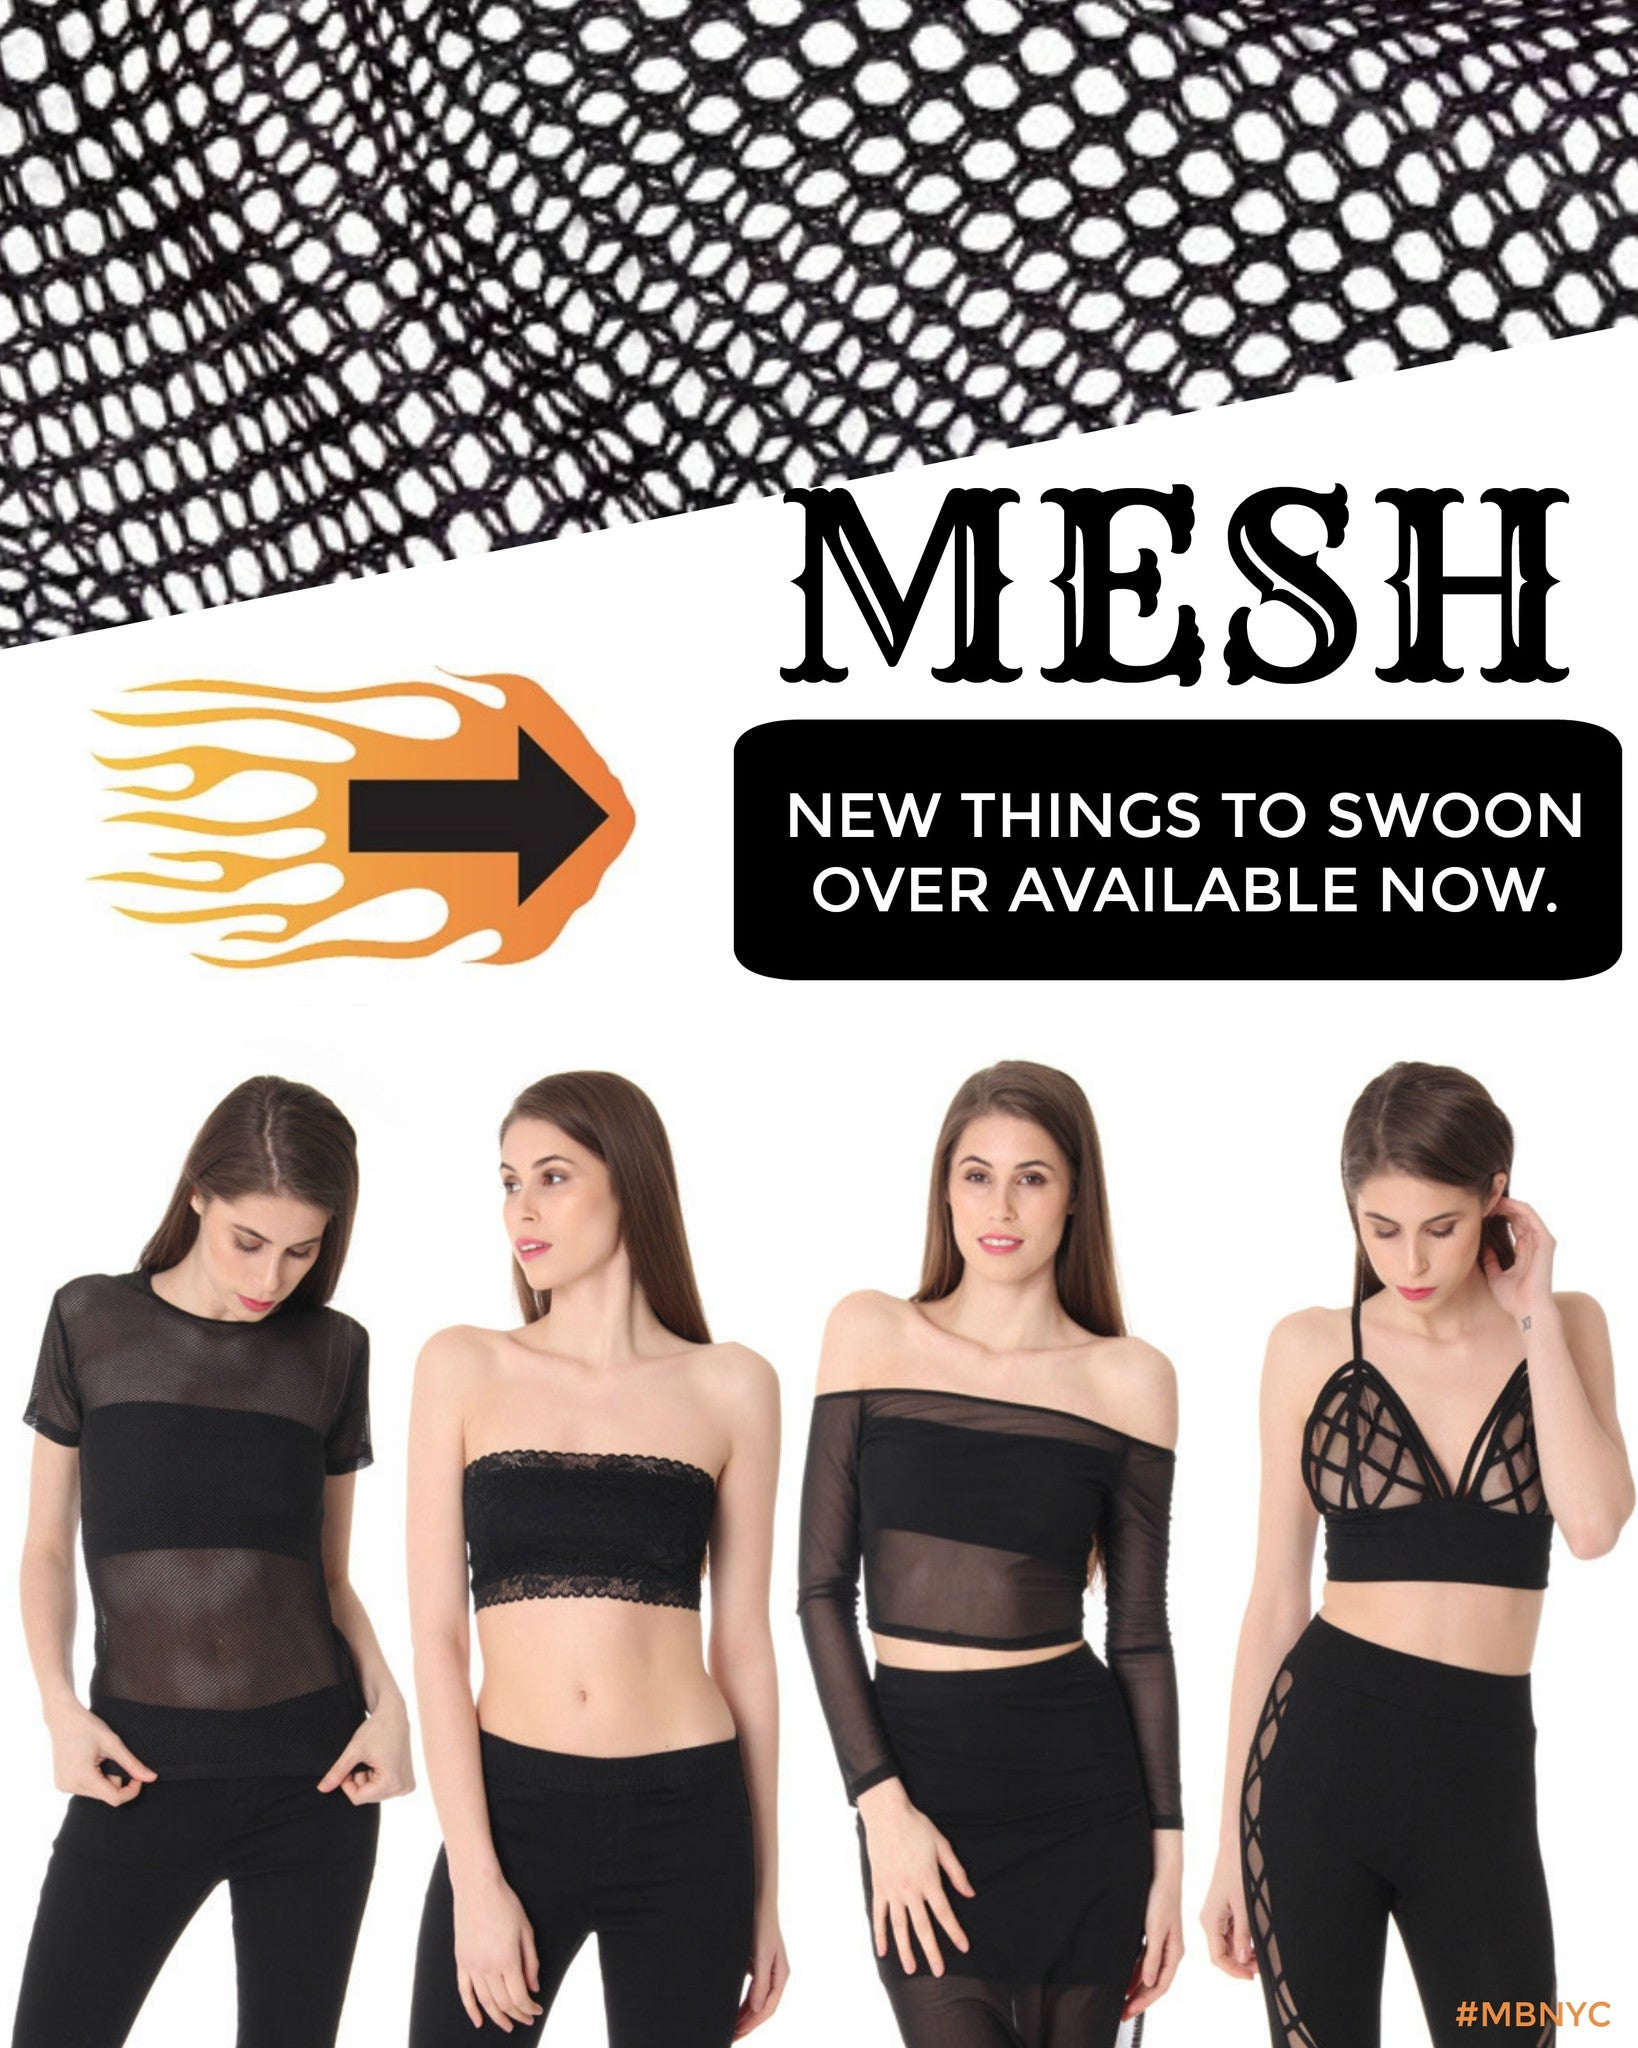 8130b173c5d4d We are head over heels for the new mesh that has just arrived on our  website. Some of our favorite items include